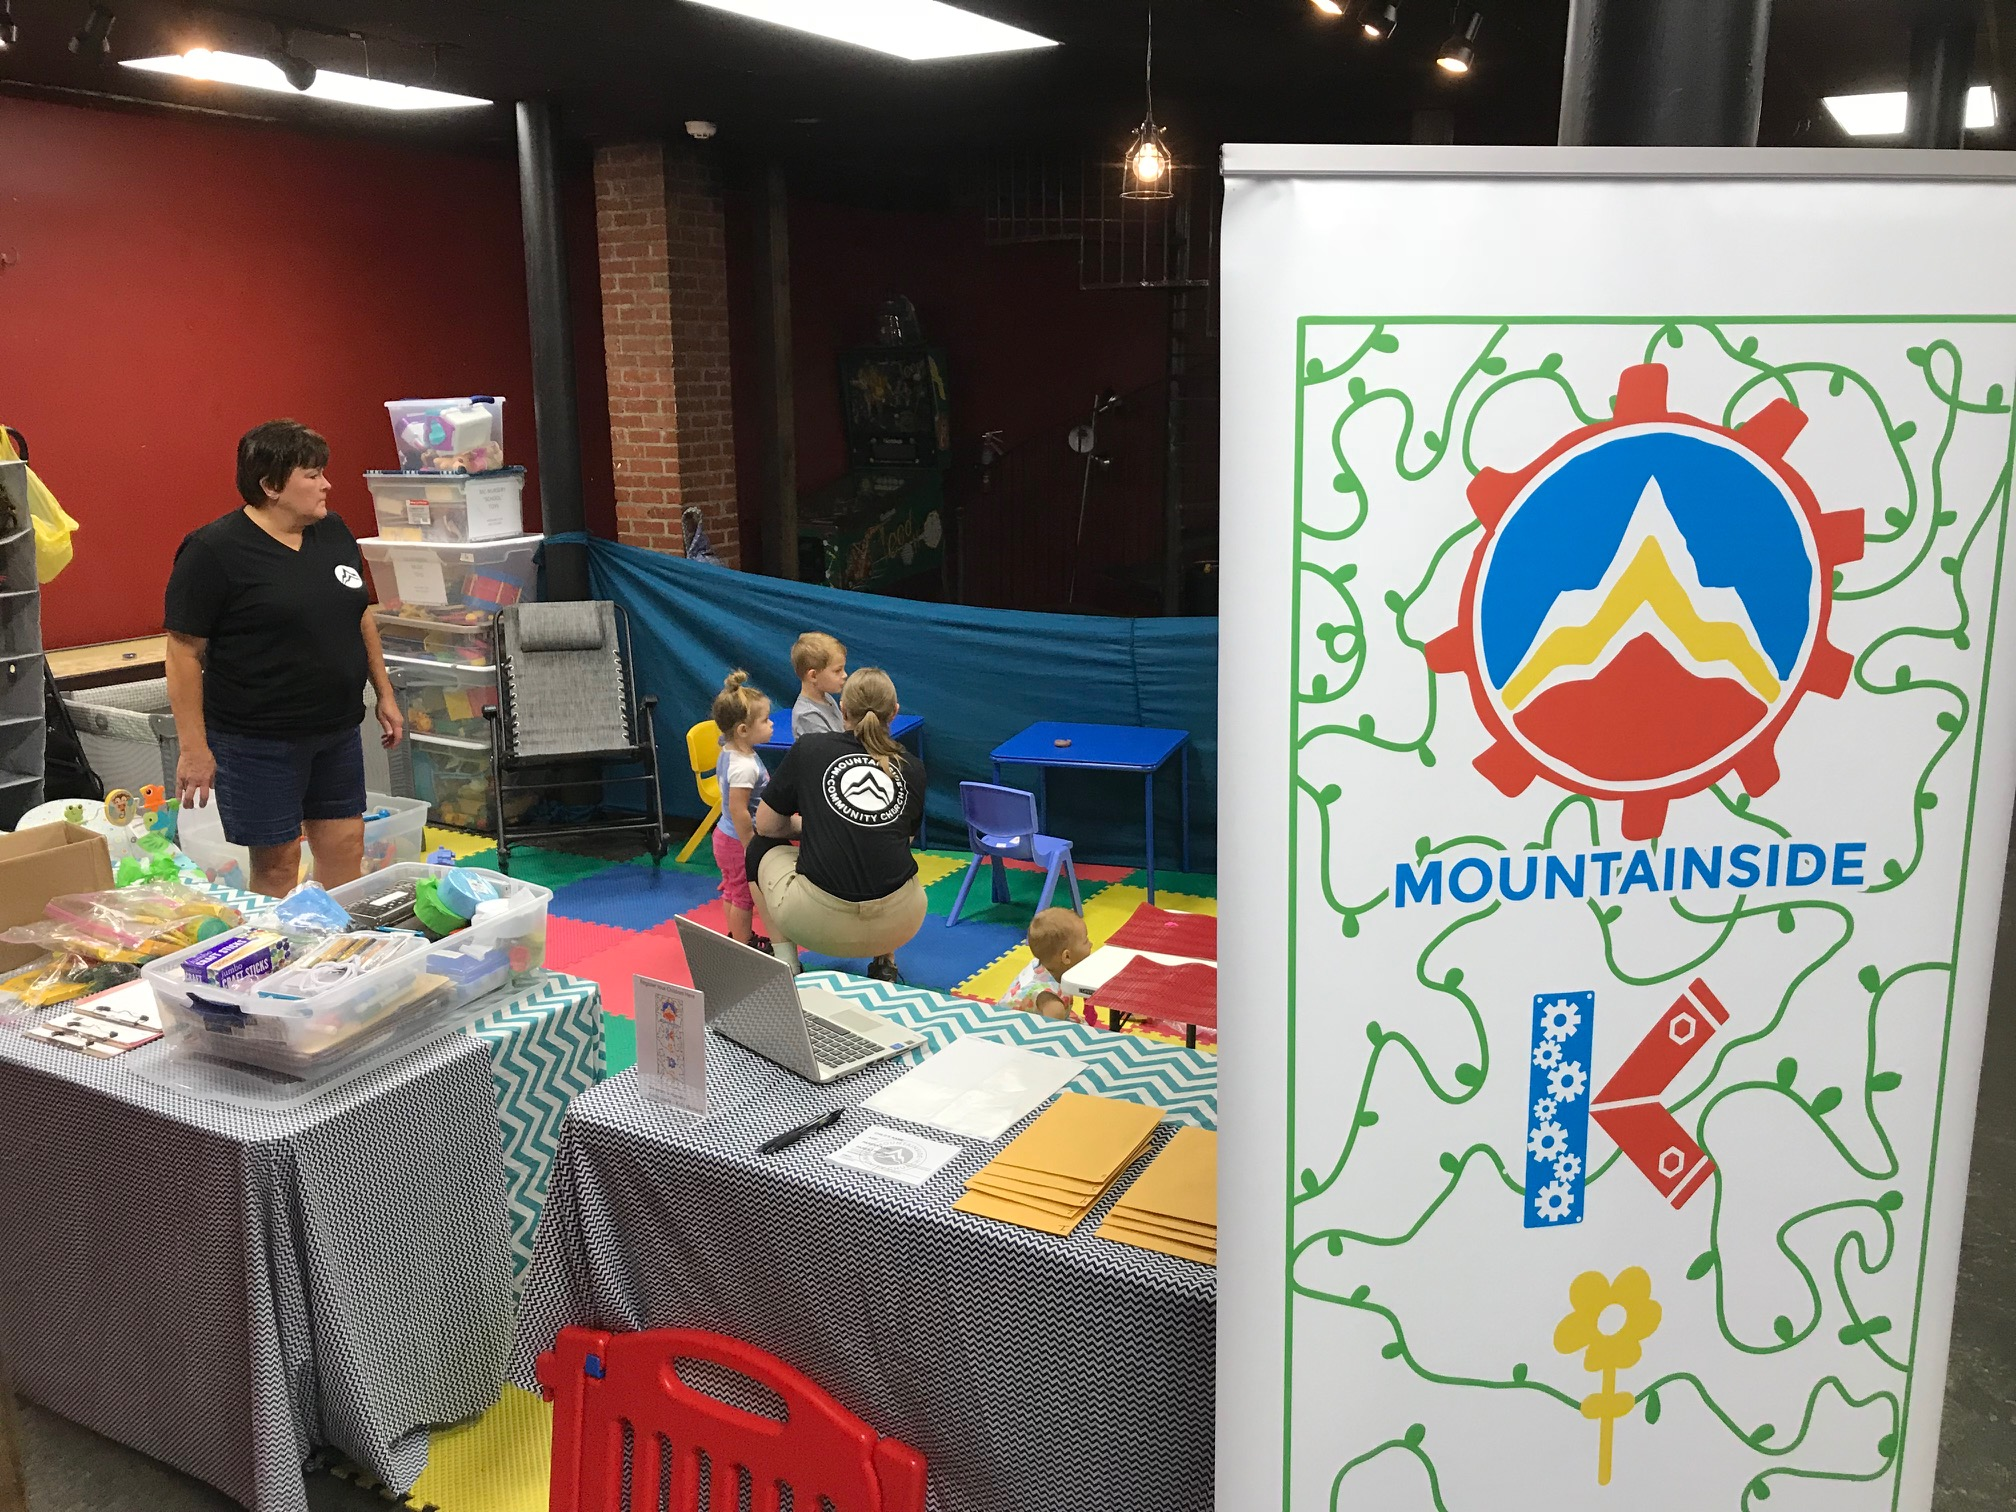 Mountainside Kids area was ready to go on our first Sunday at Galileo's!